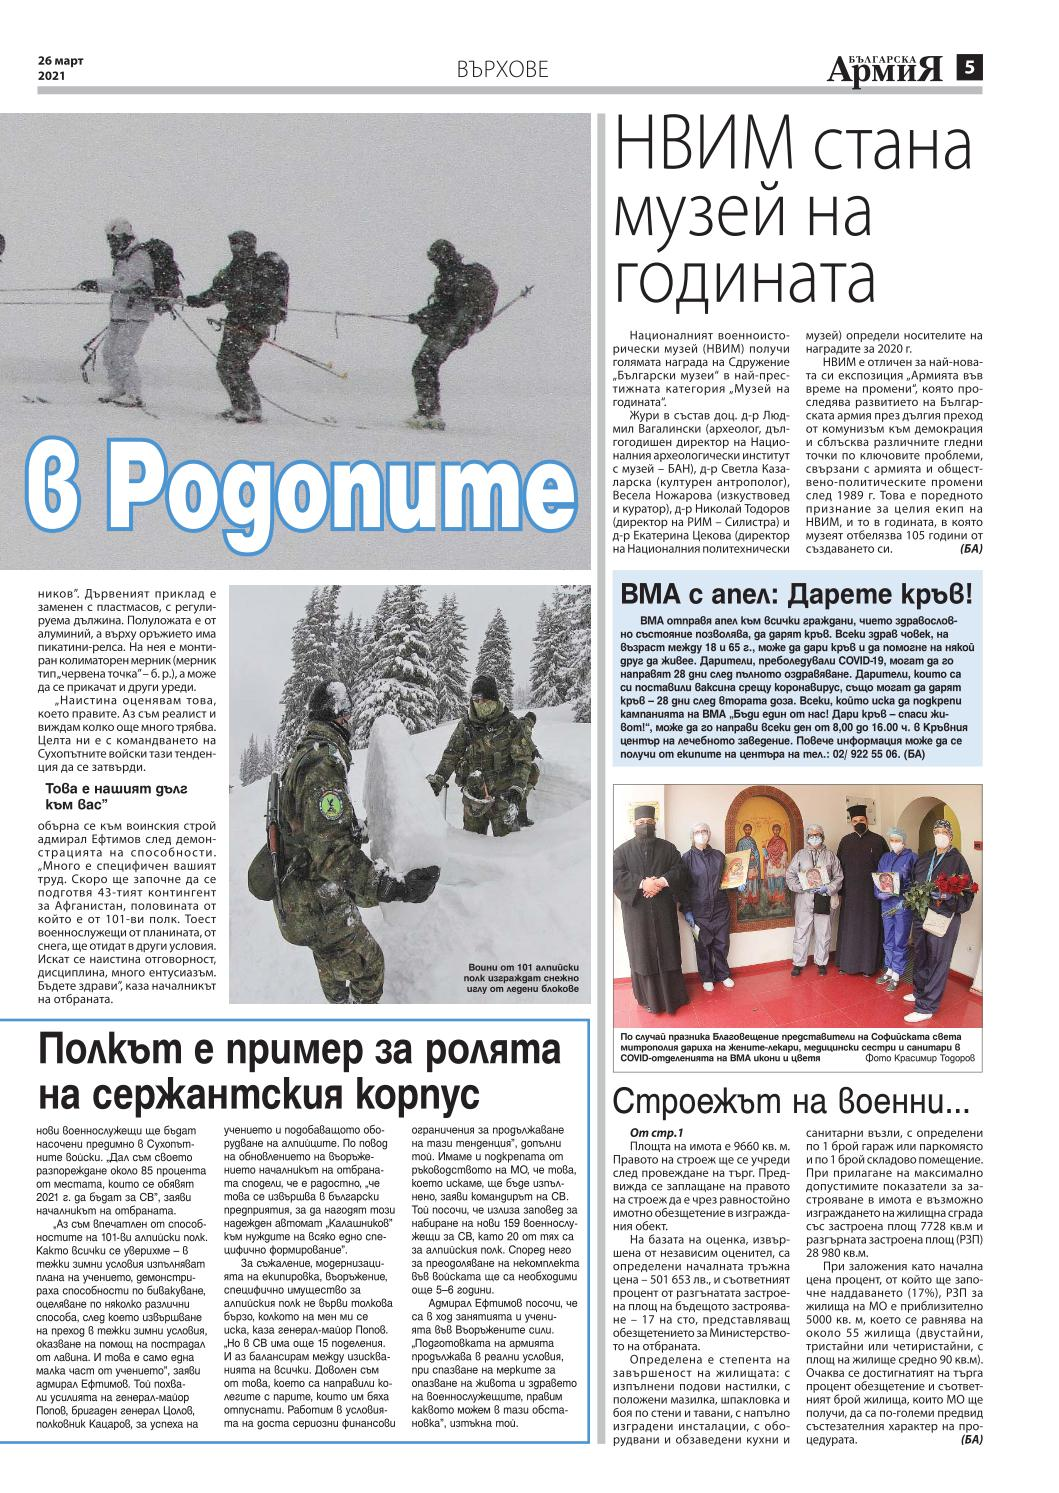 https://armymedia.bg/wp-content/uploads/2021/03/05.page1_-152.jpg